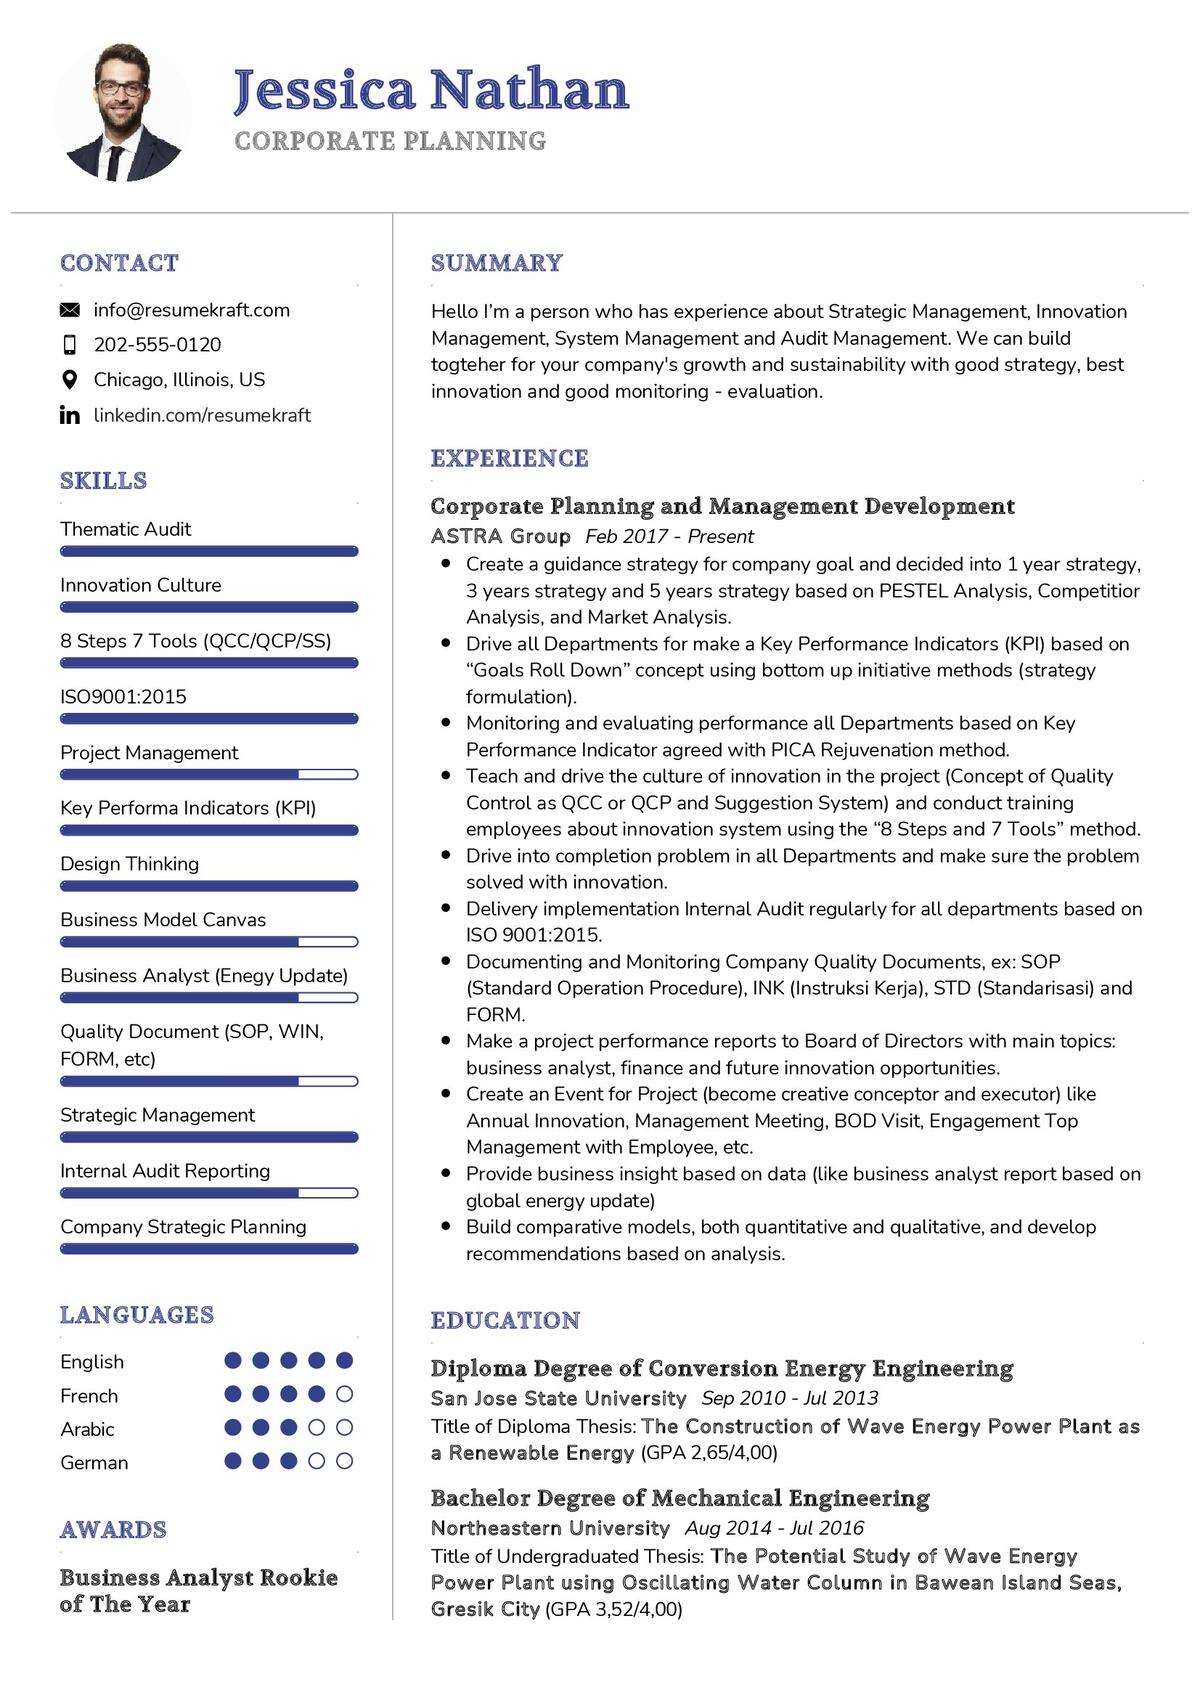 Corporate Planning CV Example